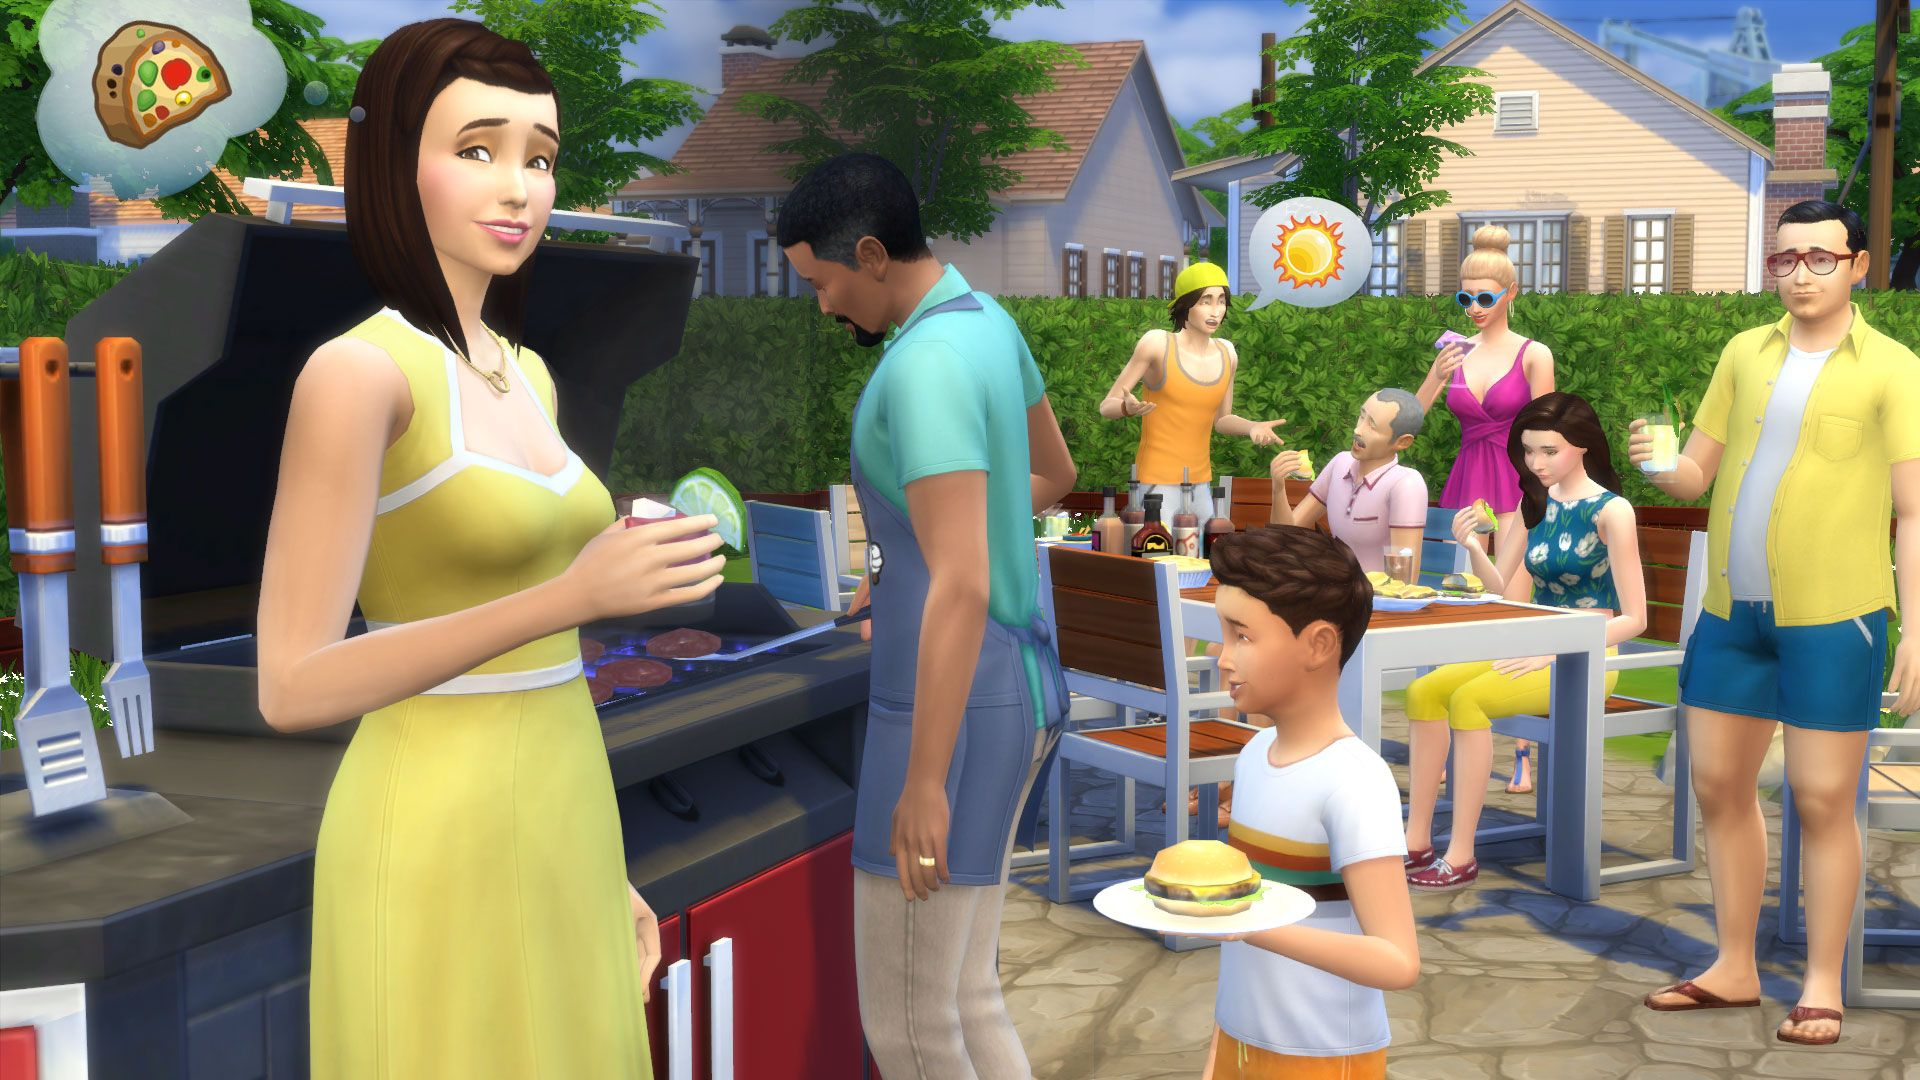 Sims 4 is free for one week on PC and Mac